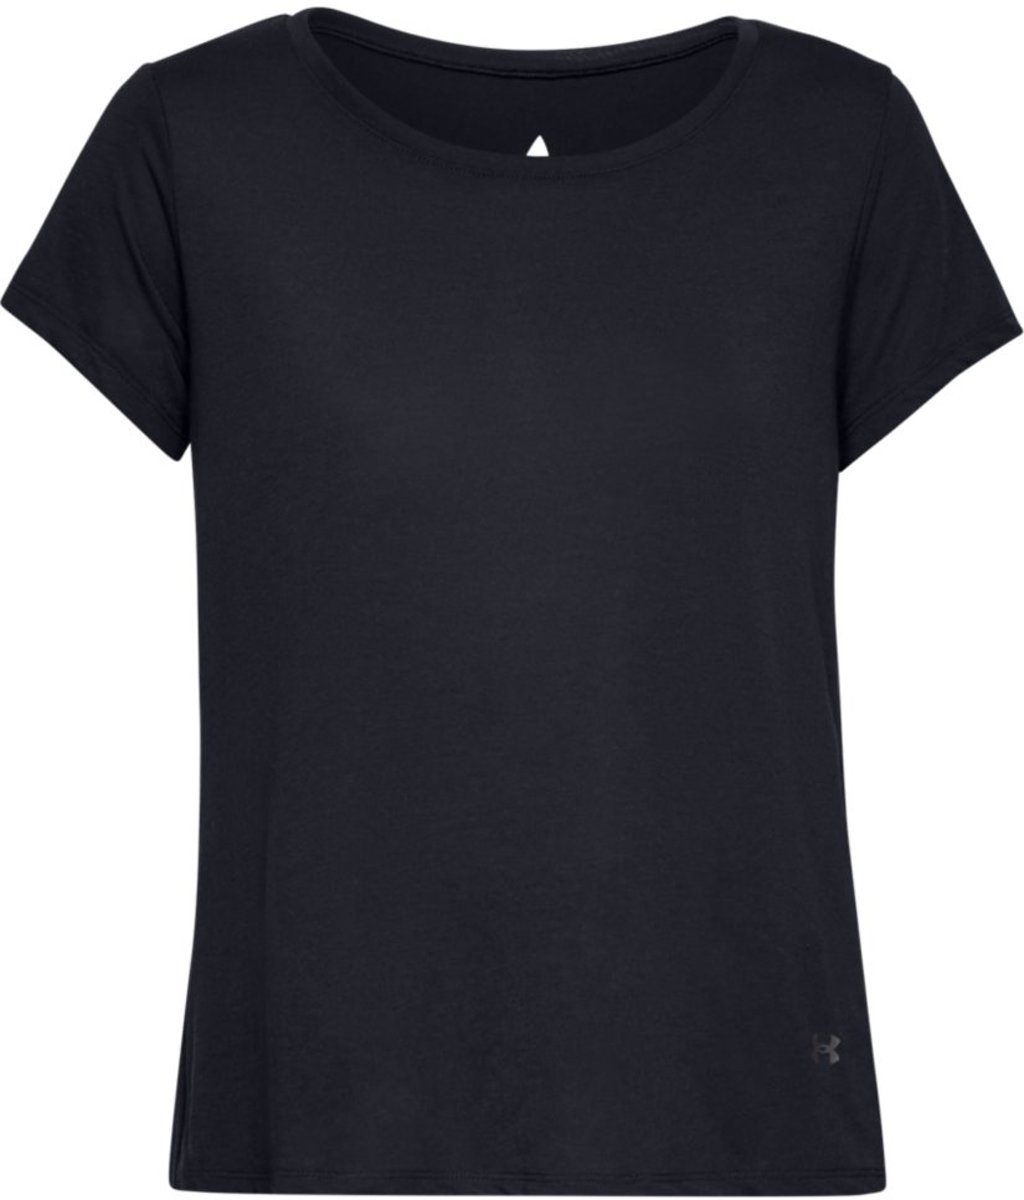 Under Armour Whisperlight Foldover Sportshirt Dames - Zwart - Maat XS kopen